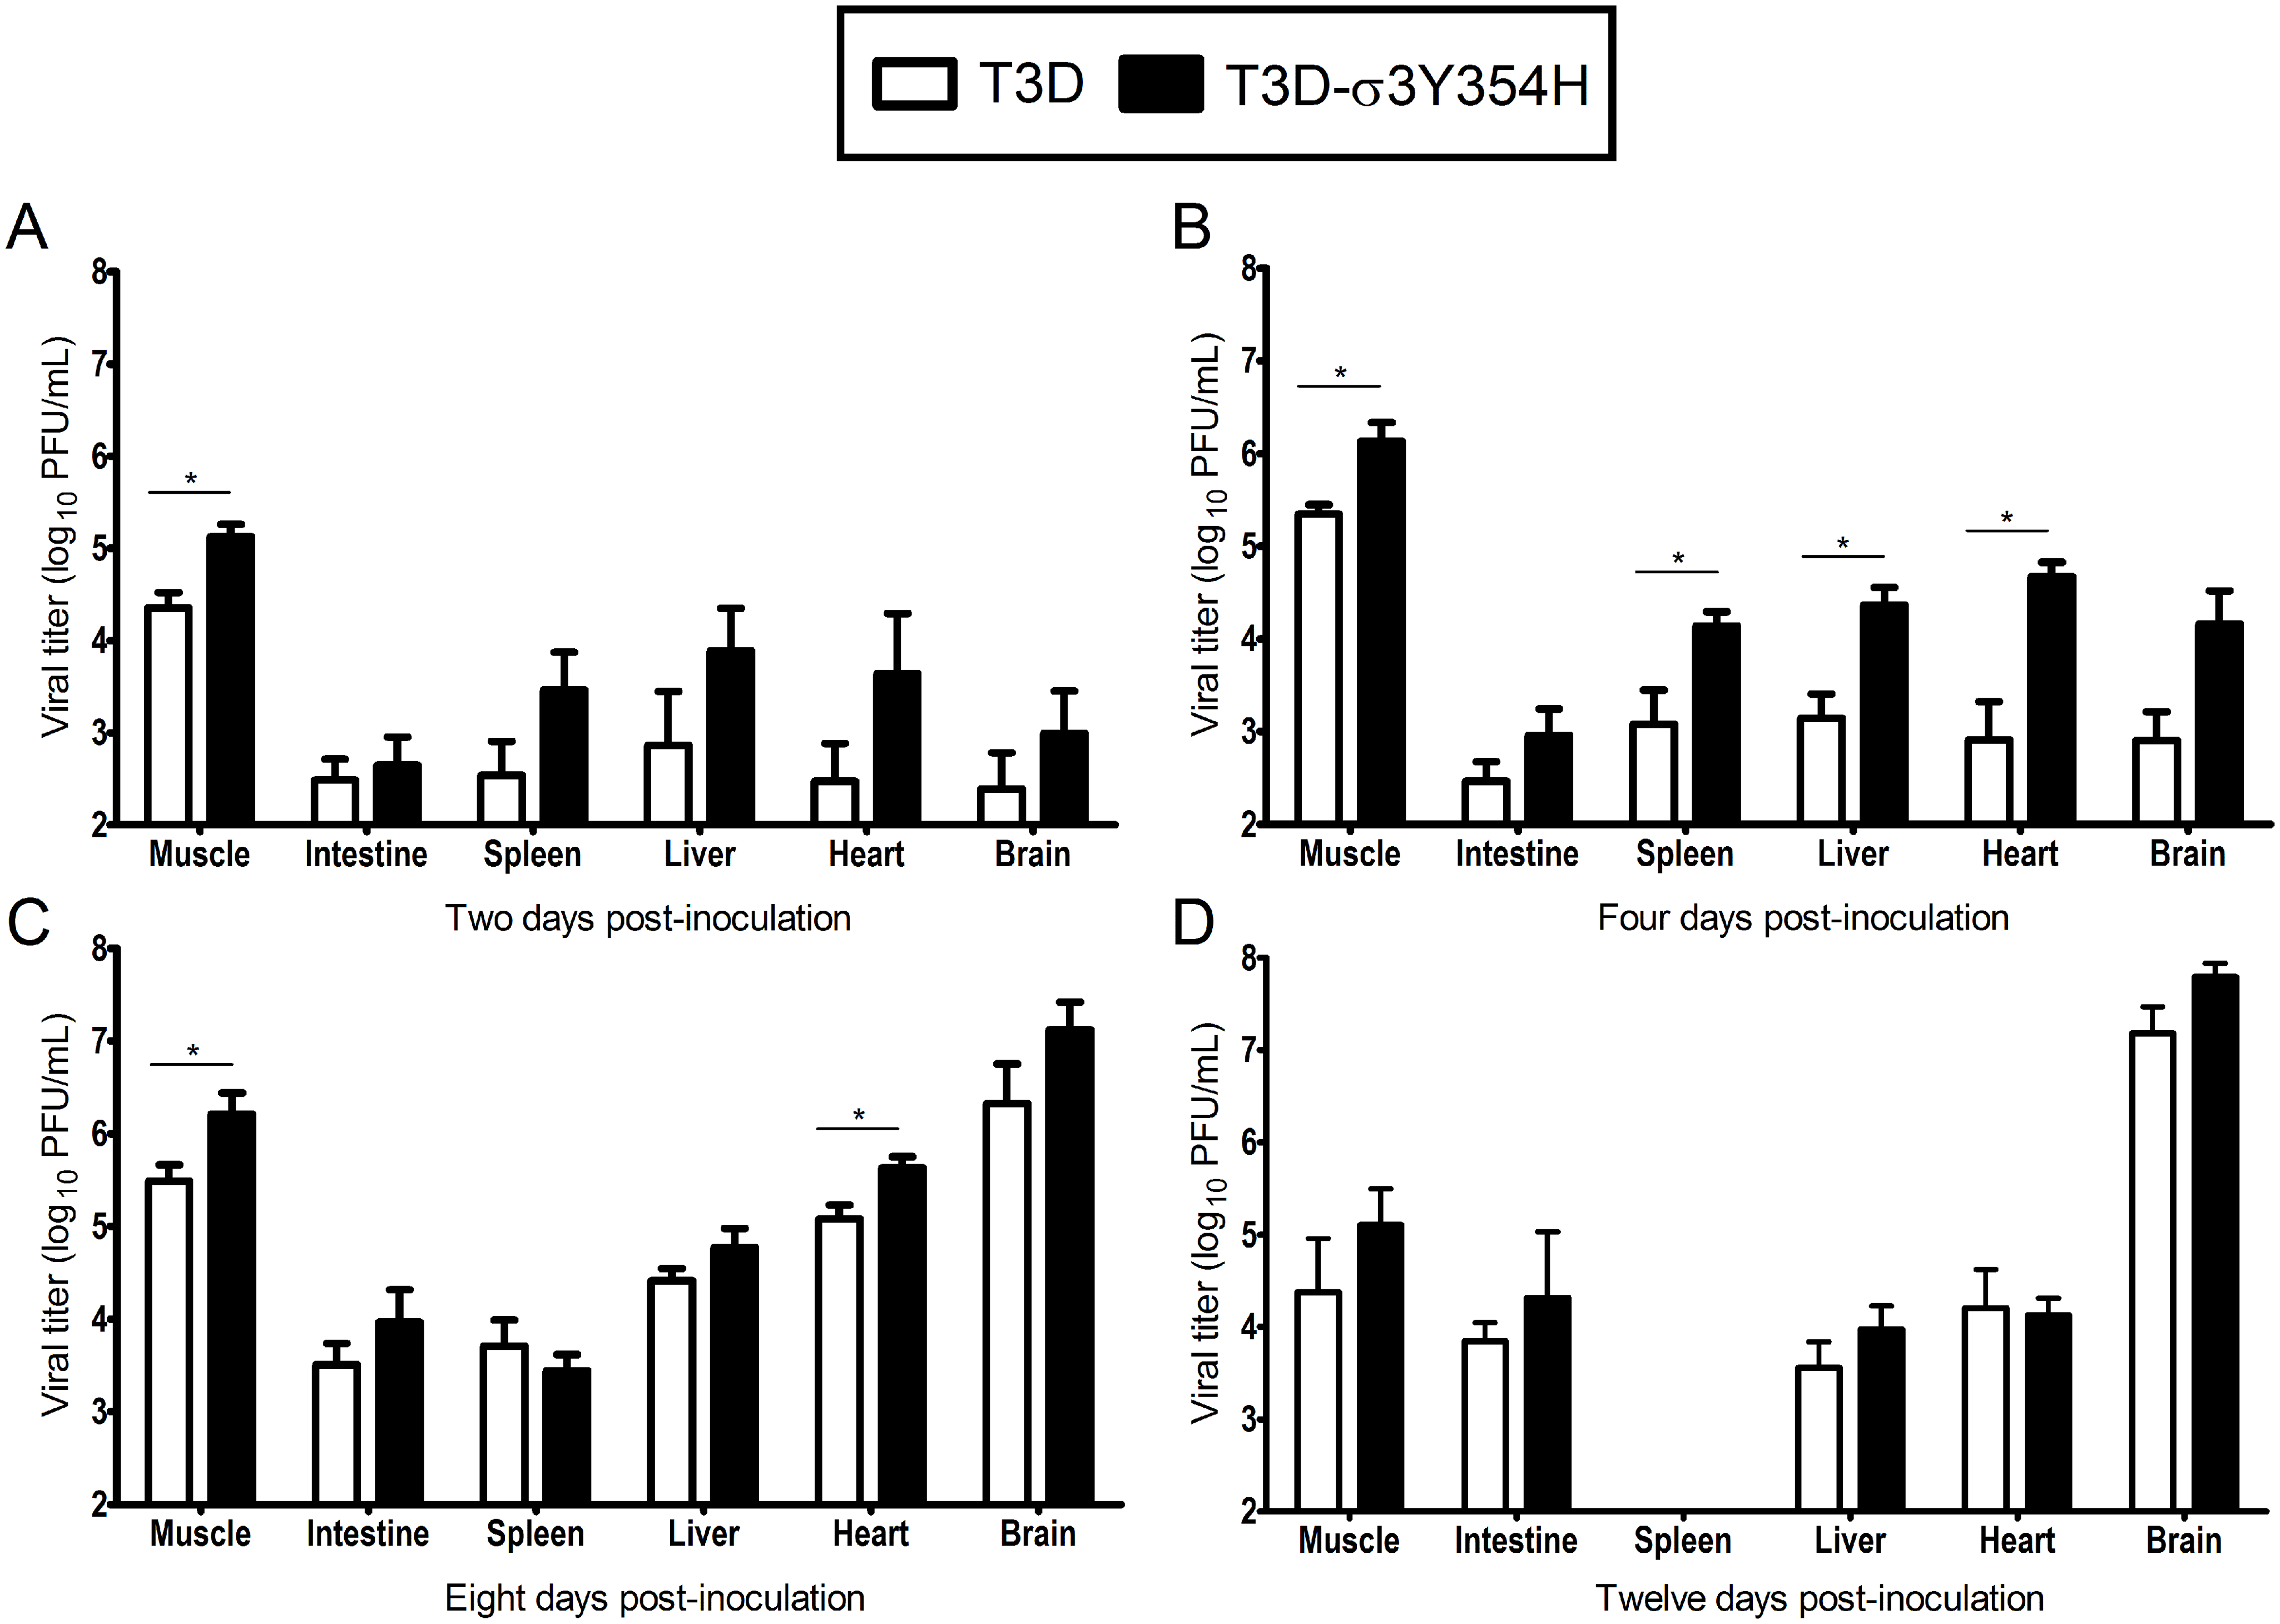 Viral loads are higher in mice infected with T3D-σ3Y354H.